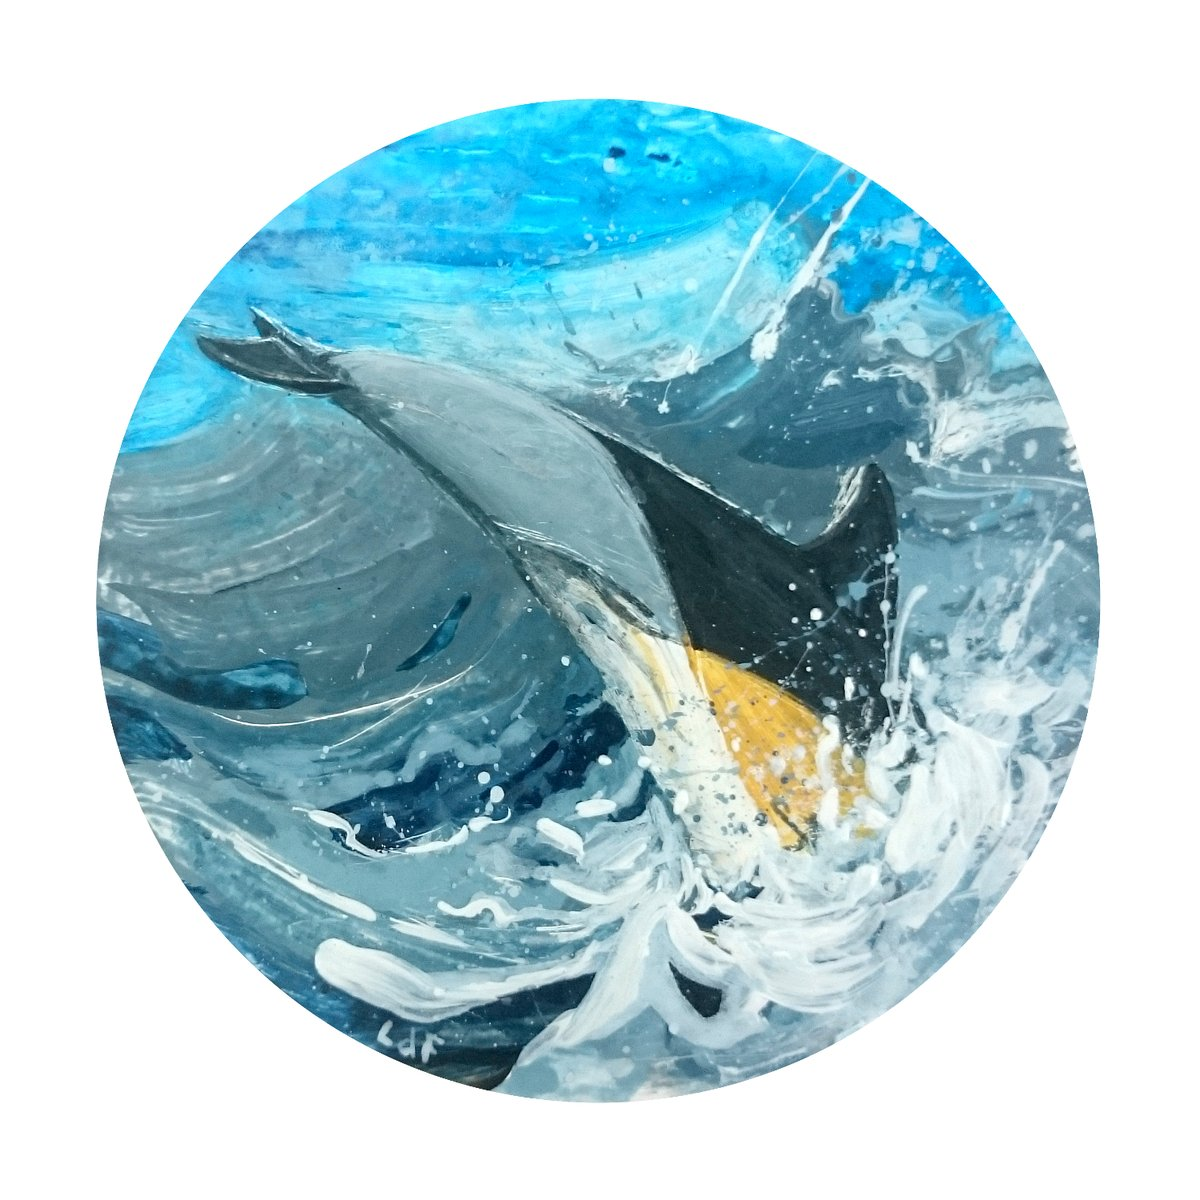 My #razorbills & #dolphin in @galleryqdundee #wildlife exhib, online now. My pics- http://www.galleryq.co.uk/artist/leo-du-feu/ … Whole exhib- http://www.galleryq.co.uk/exhibition/wild-beauty-featuring-brian-baxter/ … #Painted on #IsleofMay, looking to #EastLothian & #BassRock. @swlanaturaleye @BBCSpringwatch @BBCOutofDoors @Natures_Voice @nature_scot https://twitter.com/galleryqdundee/status/1180146242564829185 …pic.twitter.com/gT6n6mORlh